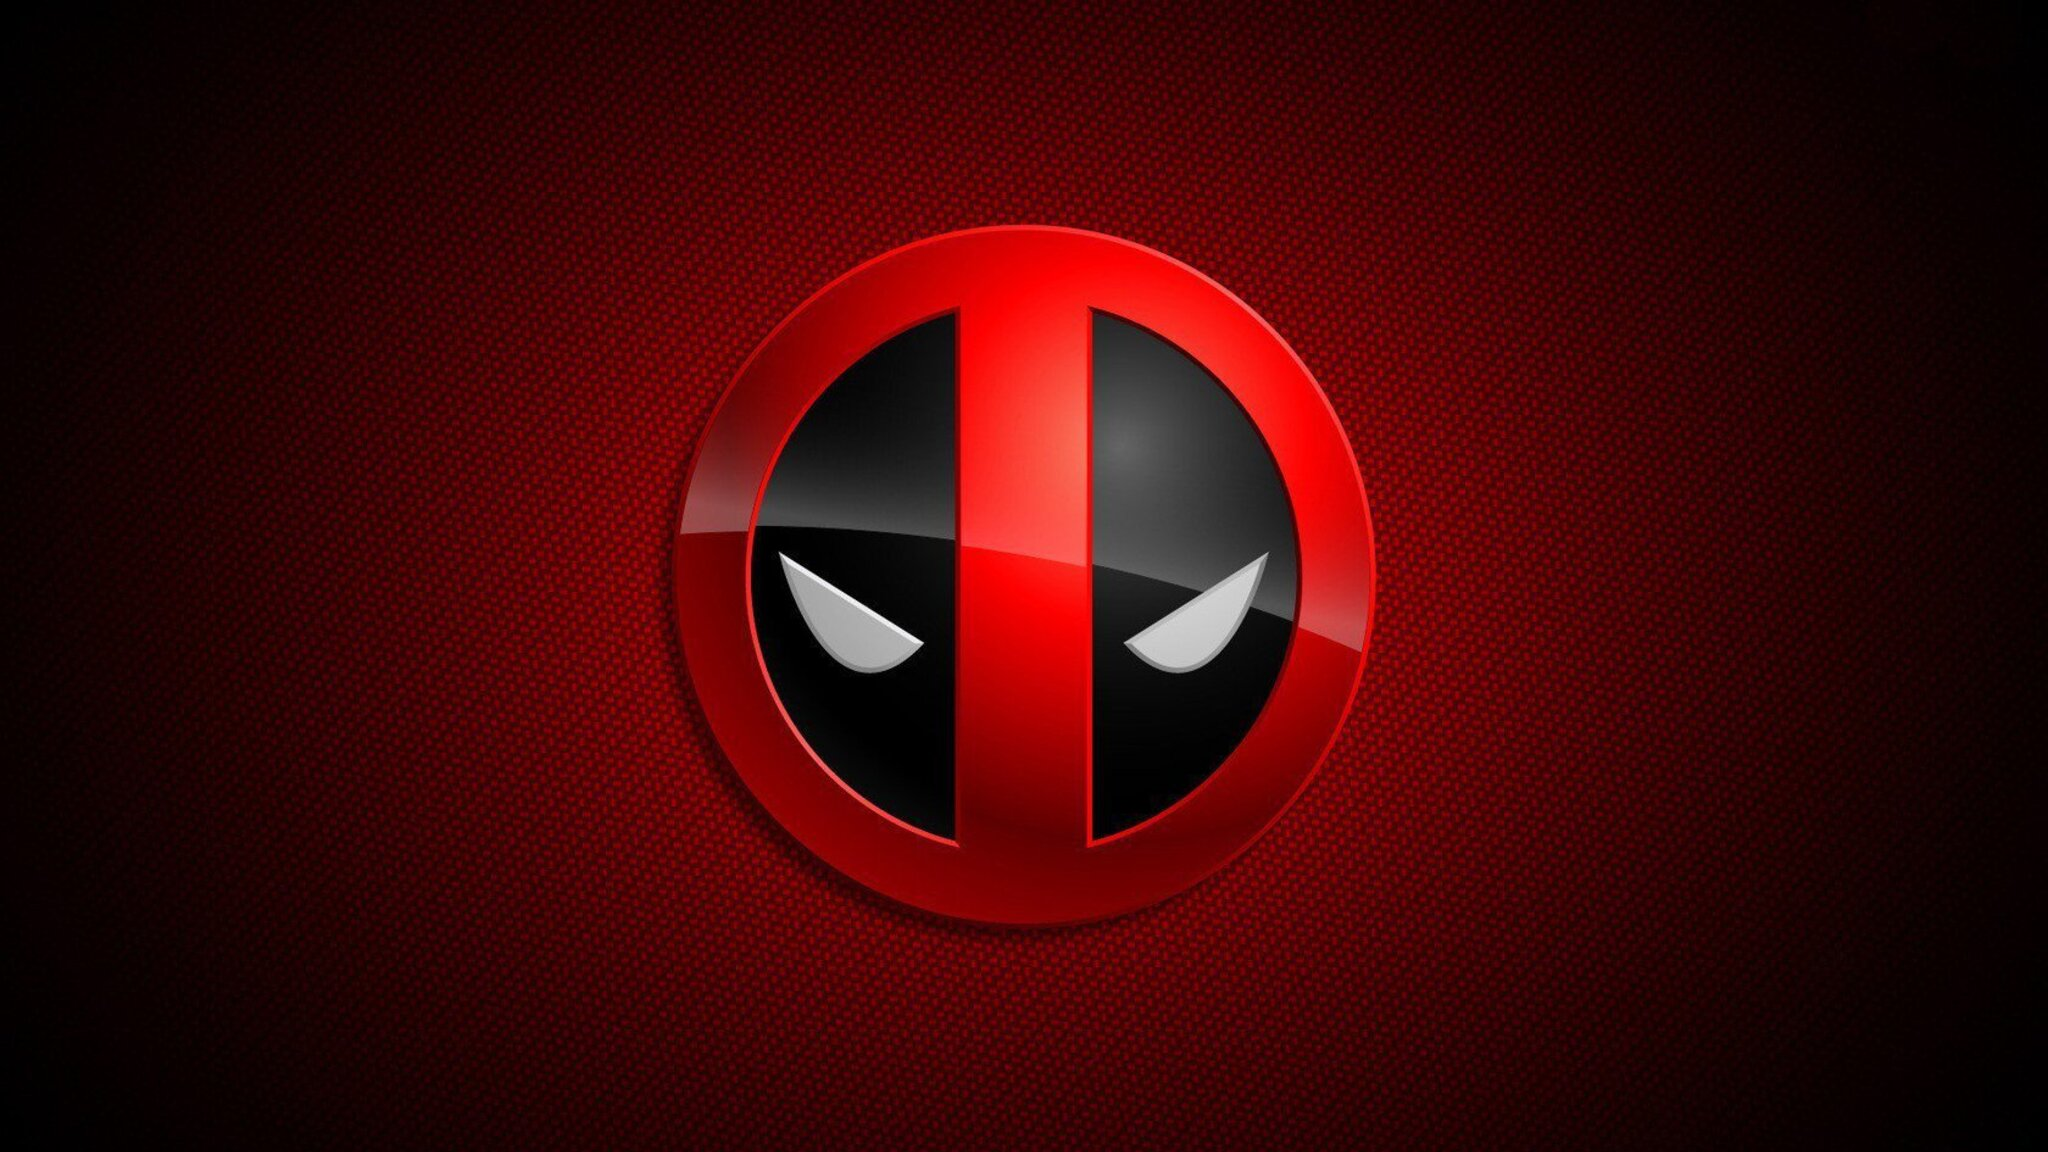 download deadpool game logo hd 4k wallpapers in 2048x1152